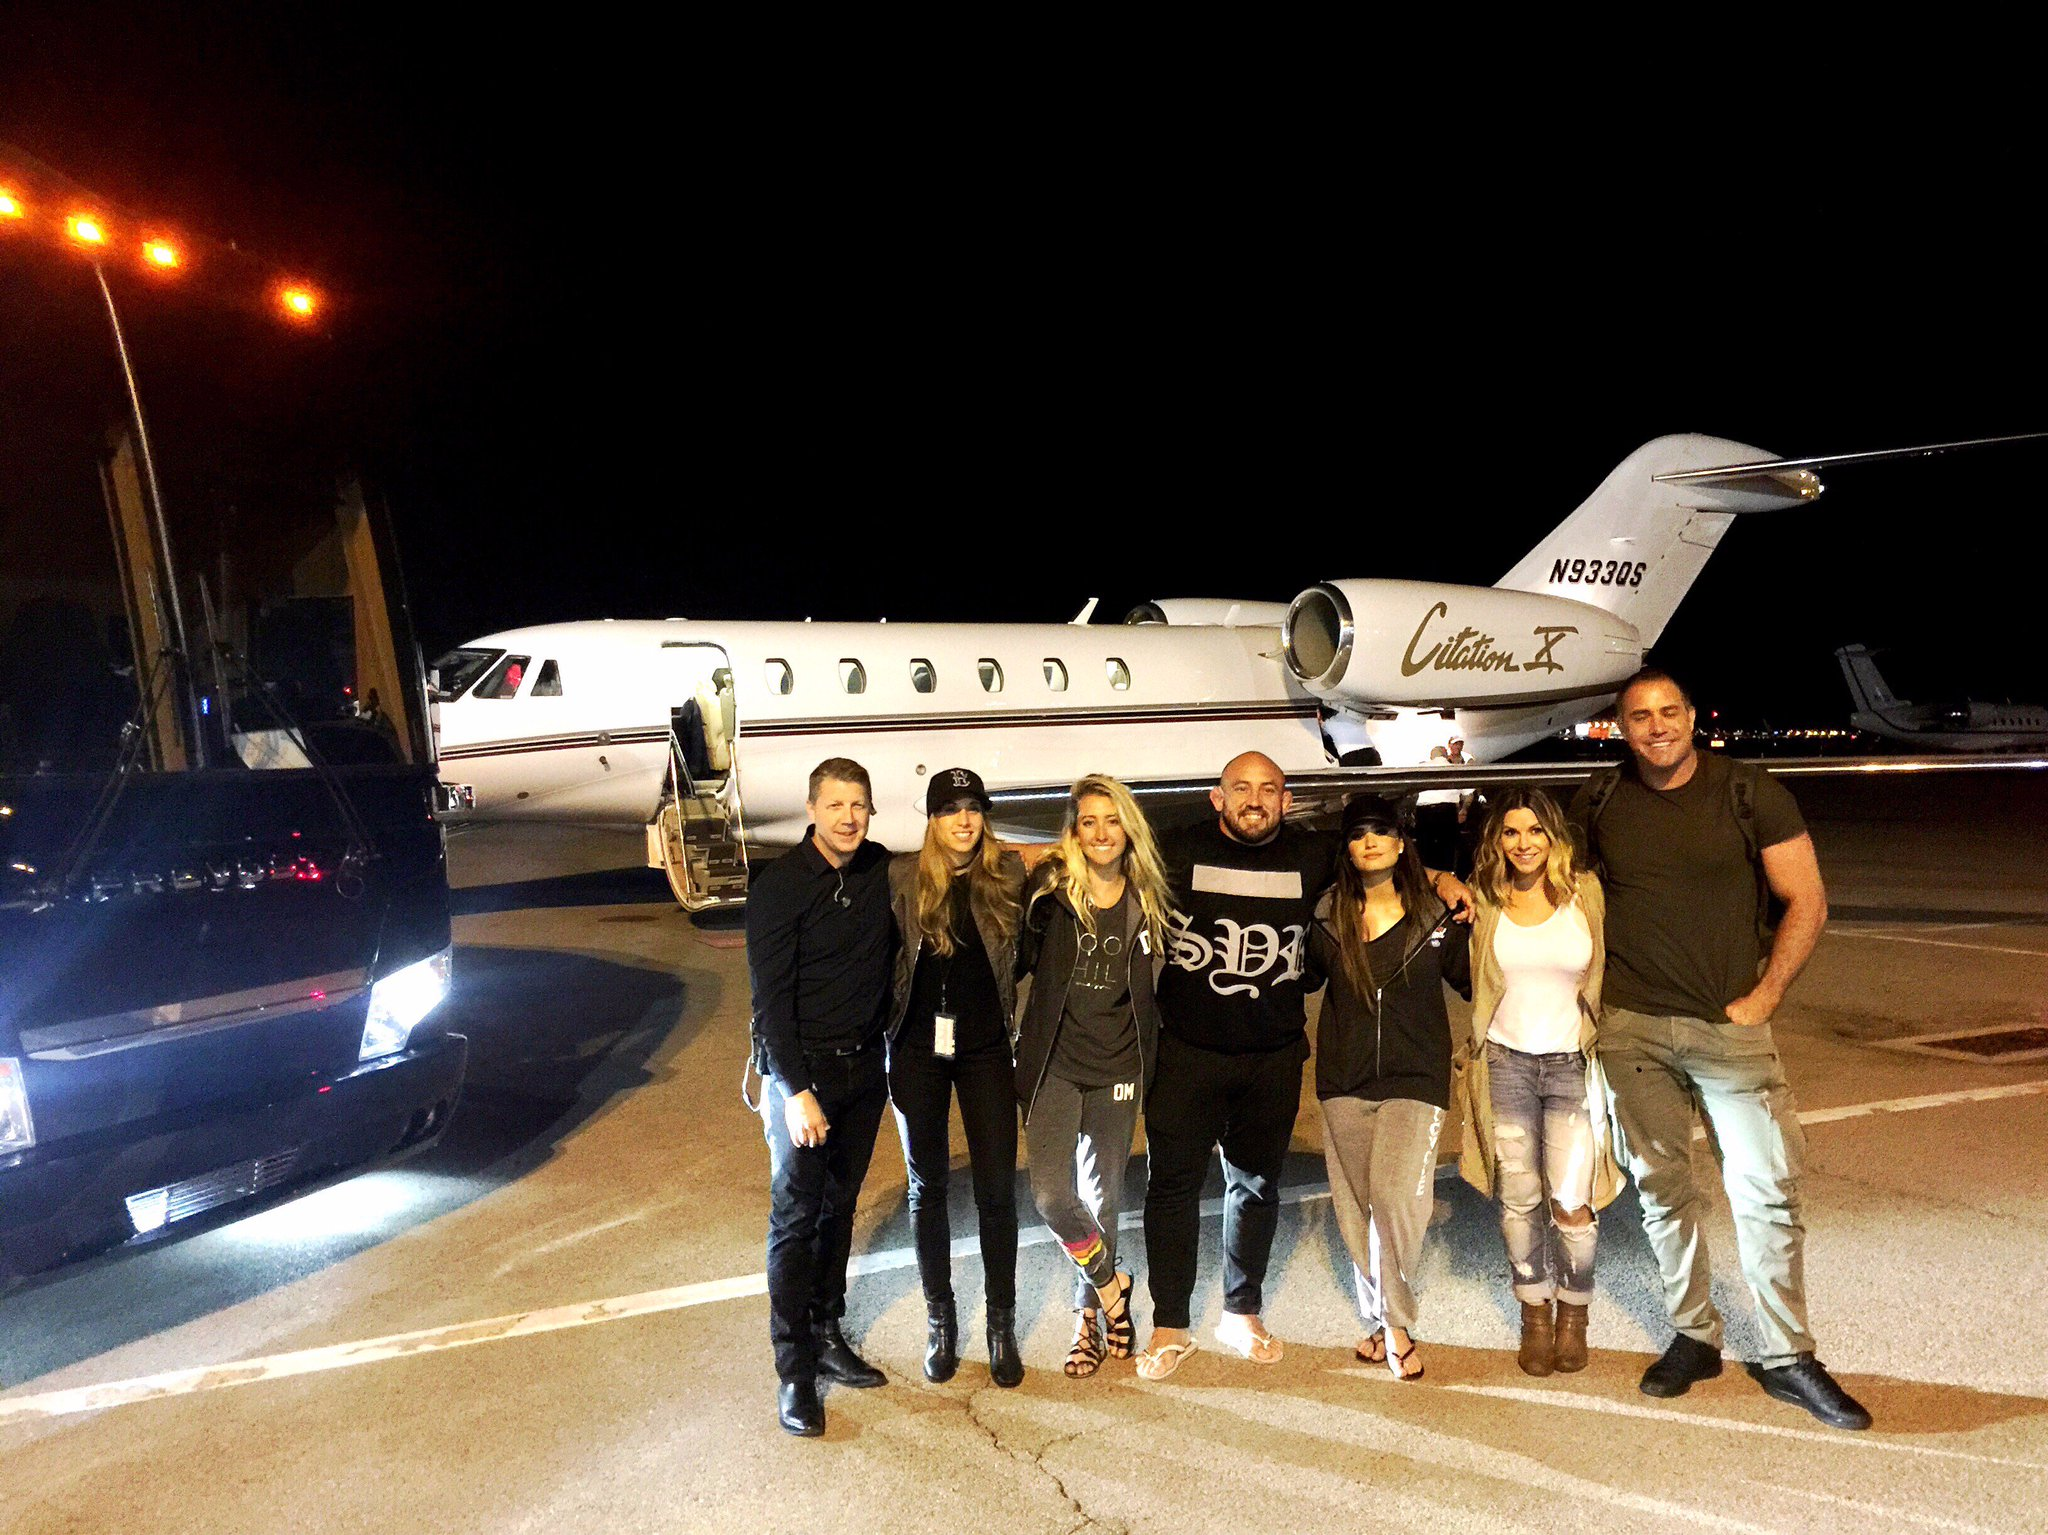 Had an absolute blast on tour with @NickJonas!! Can't thank @Netjets enough for flying us home!! https://t.co/QfwAgQbzJT